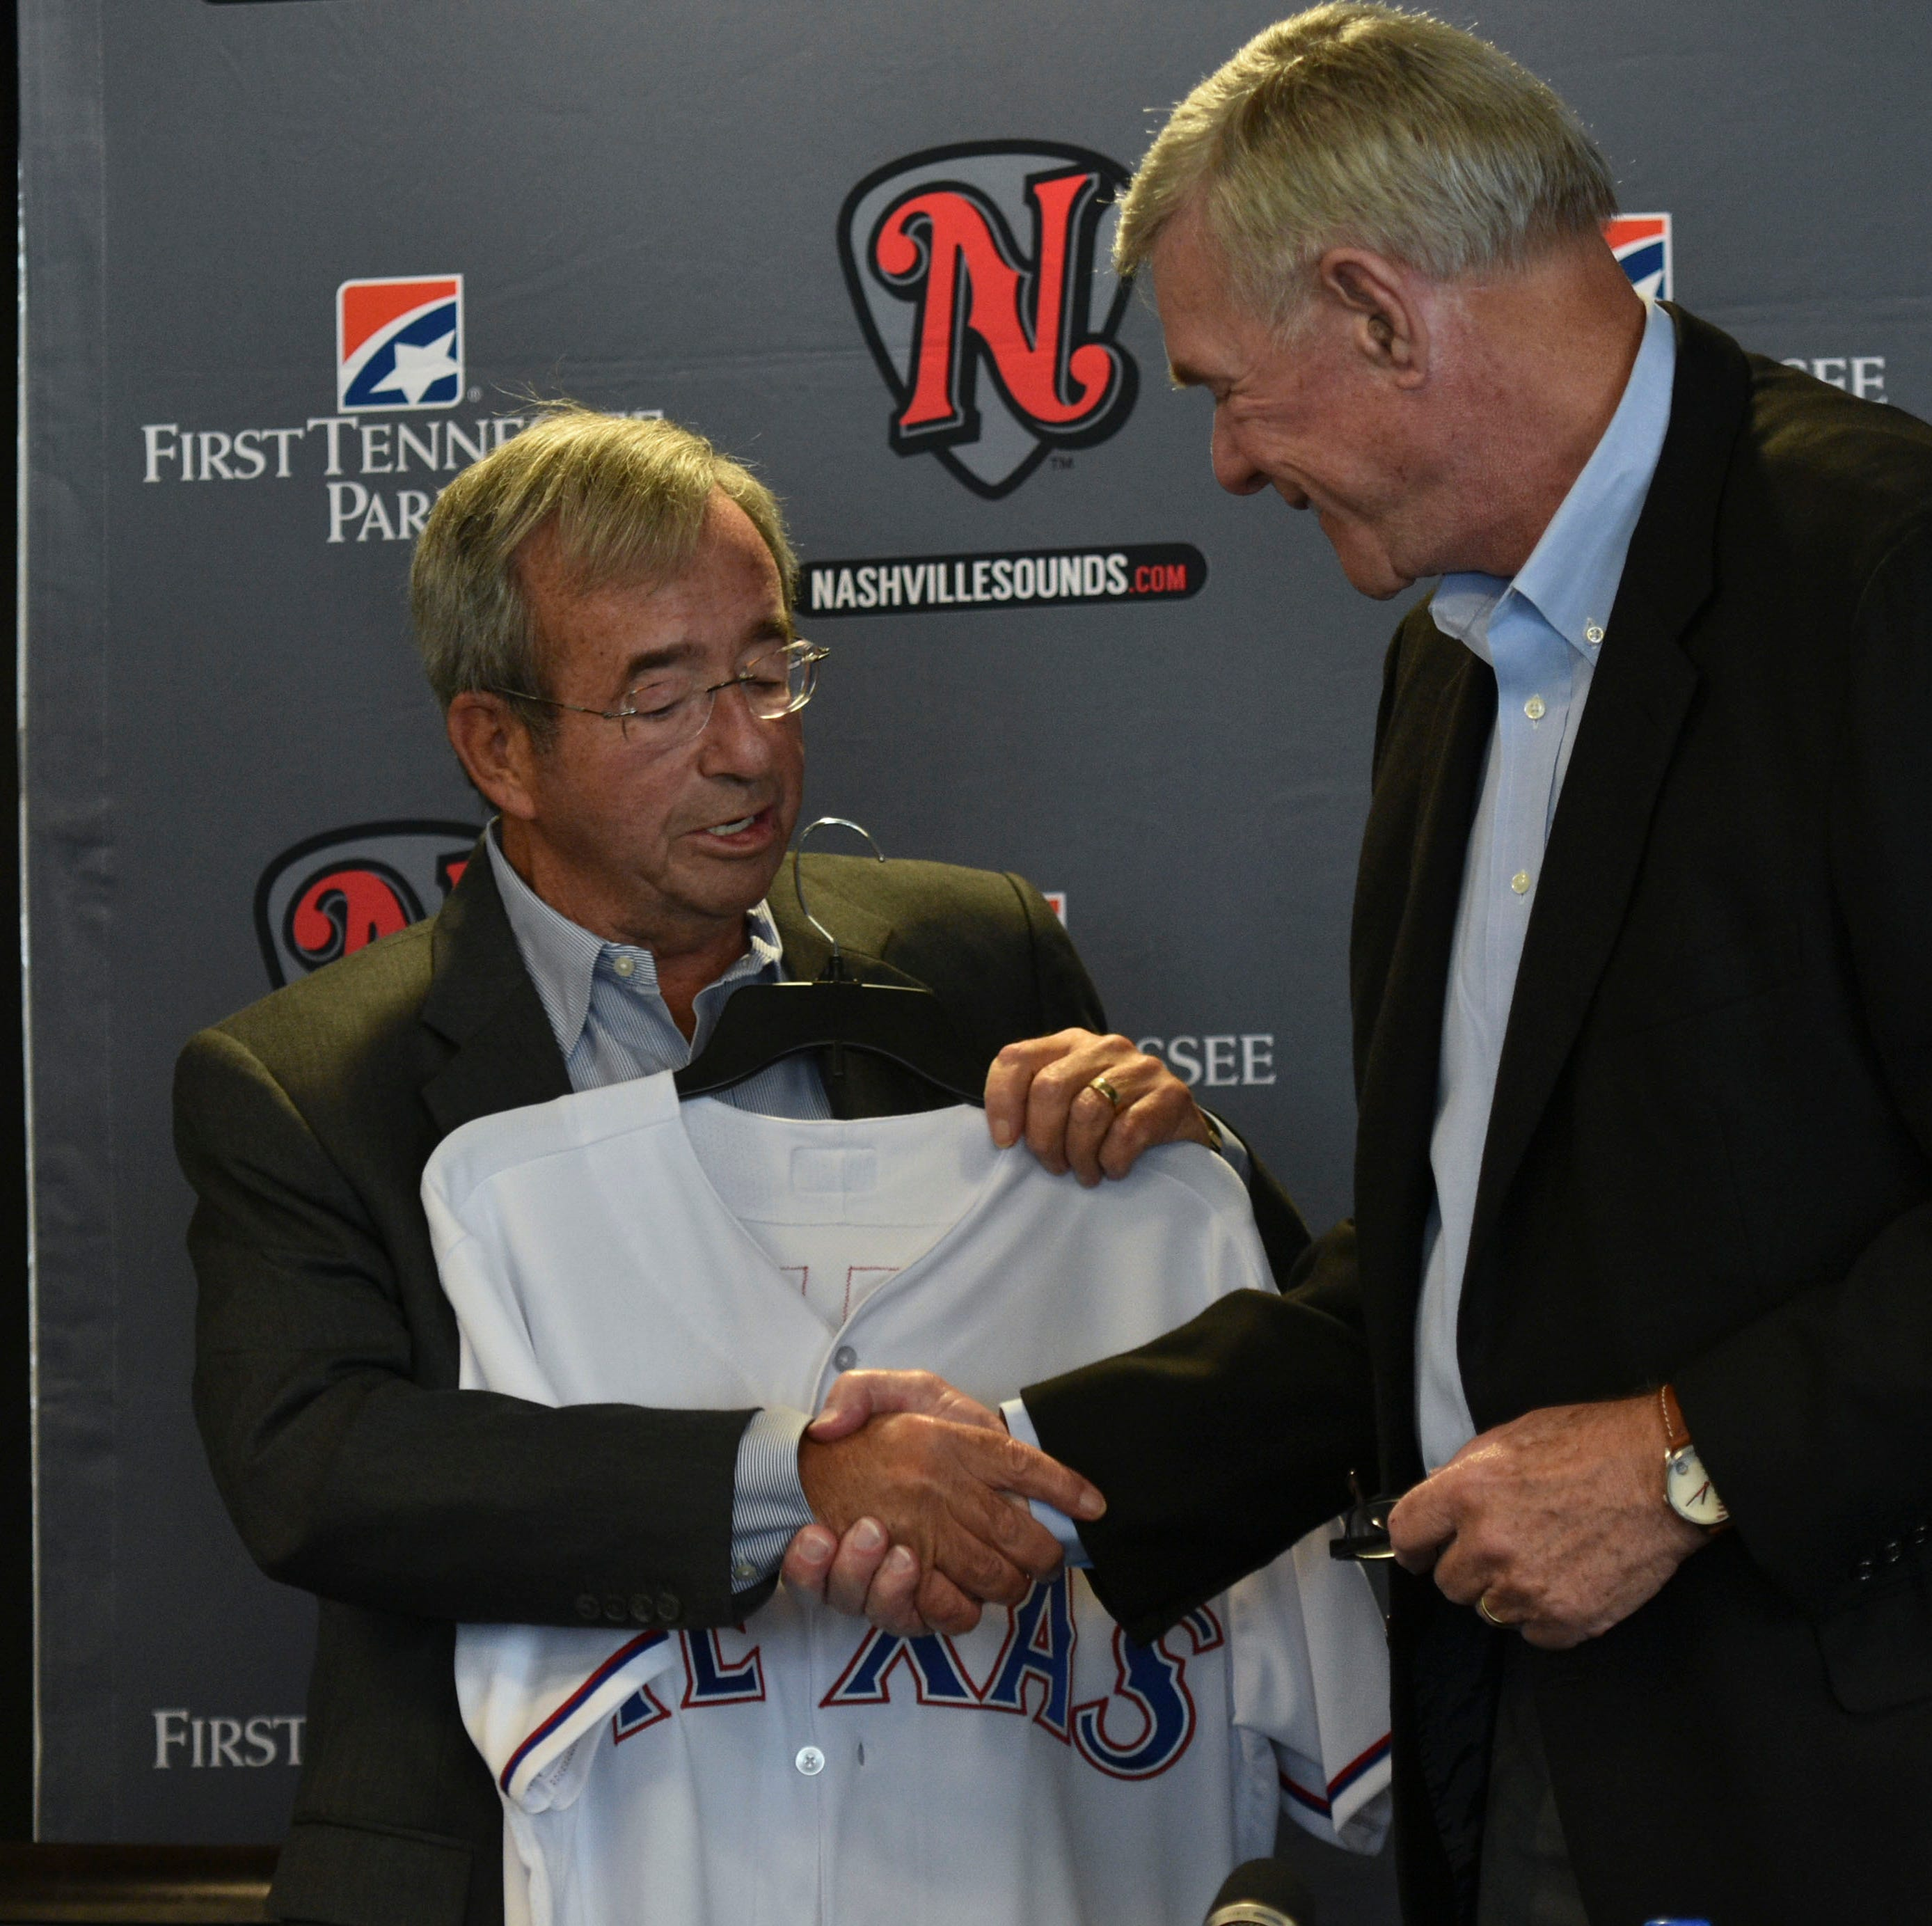 Nashville Sounds and Texas Rangers will play exhibition game in 2019 or 2020